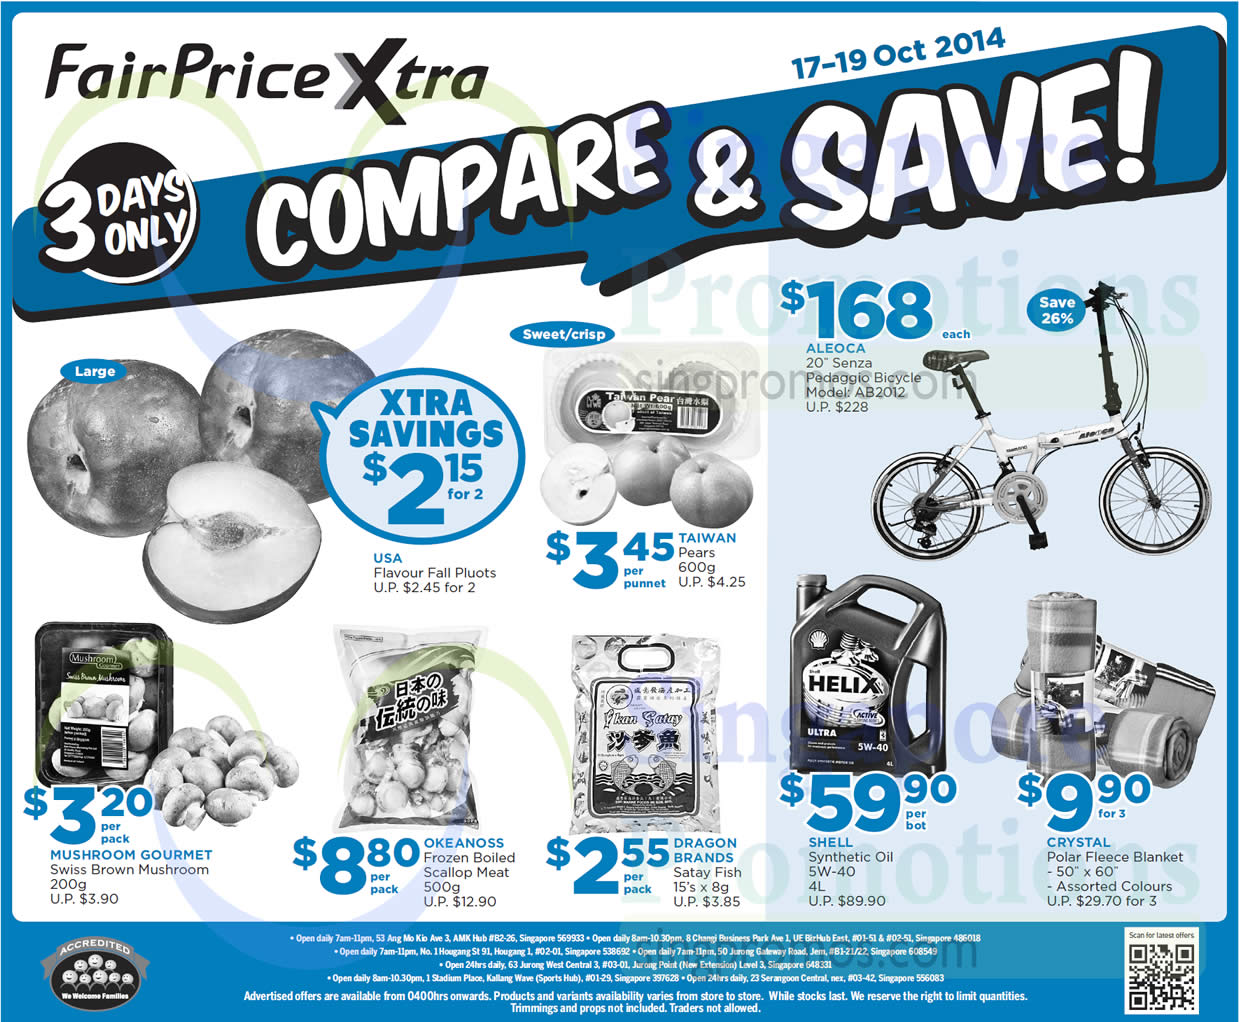 17 Oct (Valid Until 19 Oct) Compare n Save Aleoca Bicycle, Shell Synthetic Oil